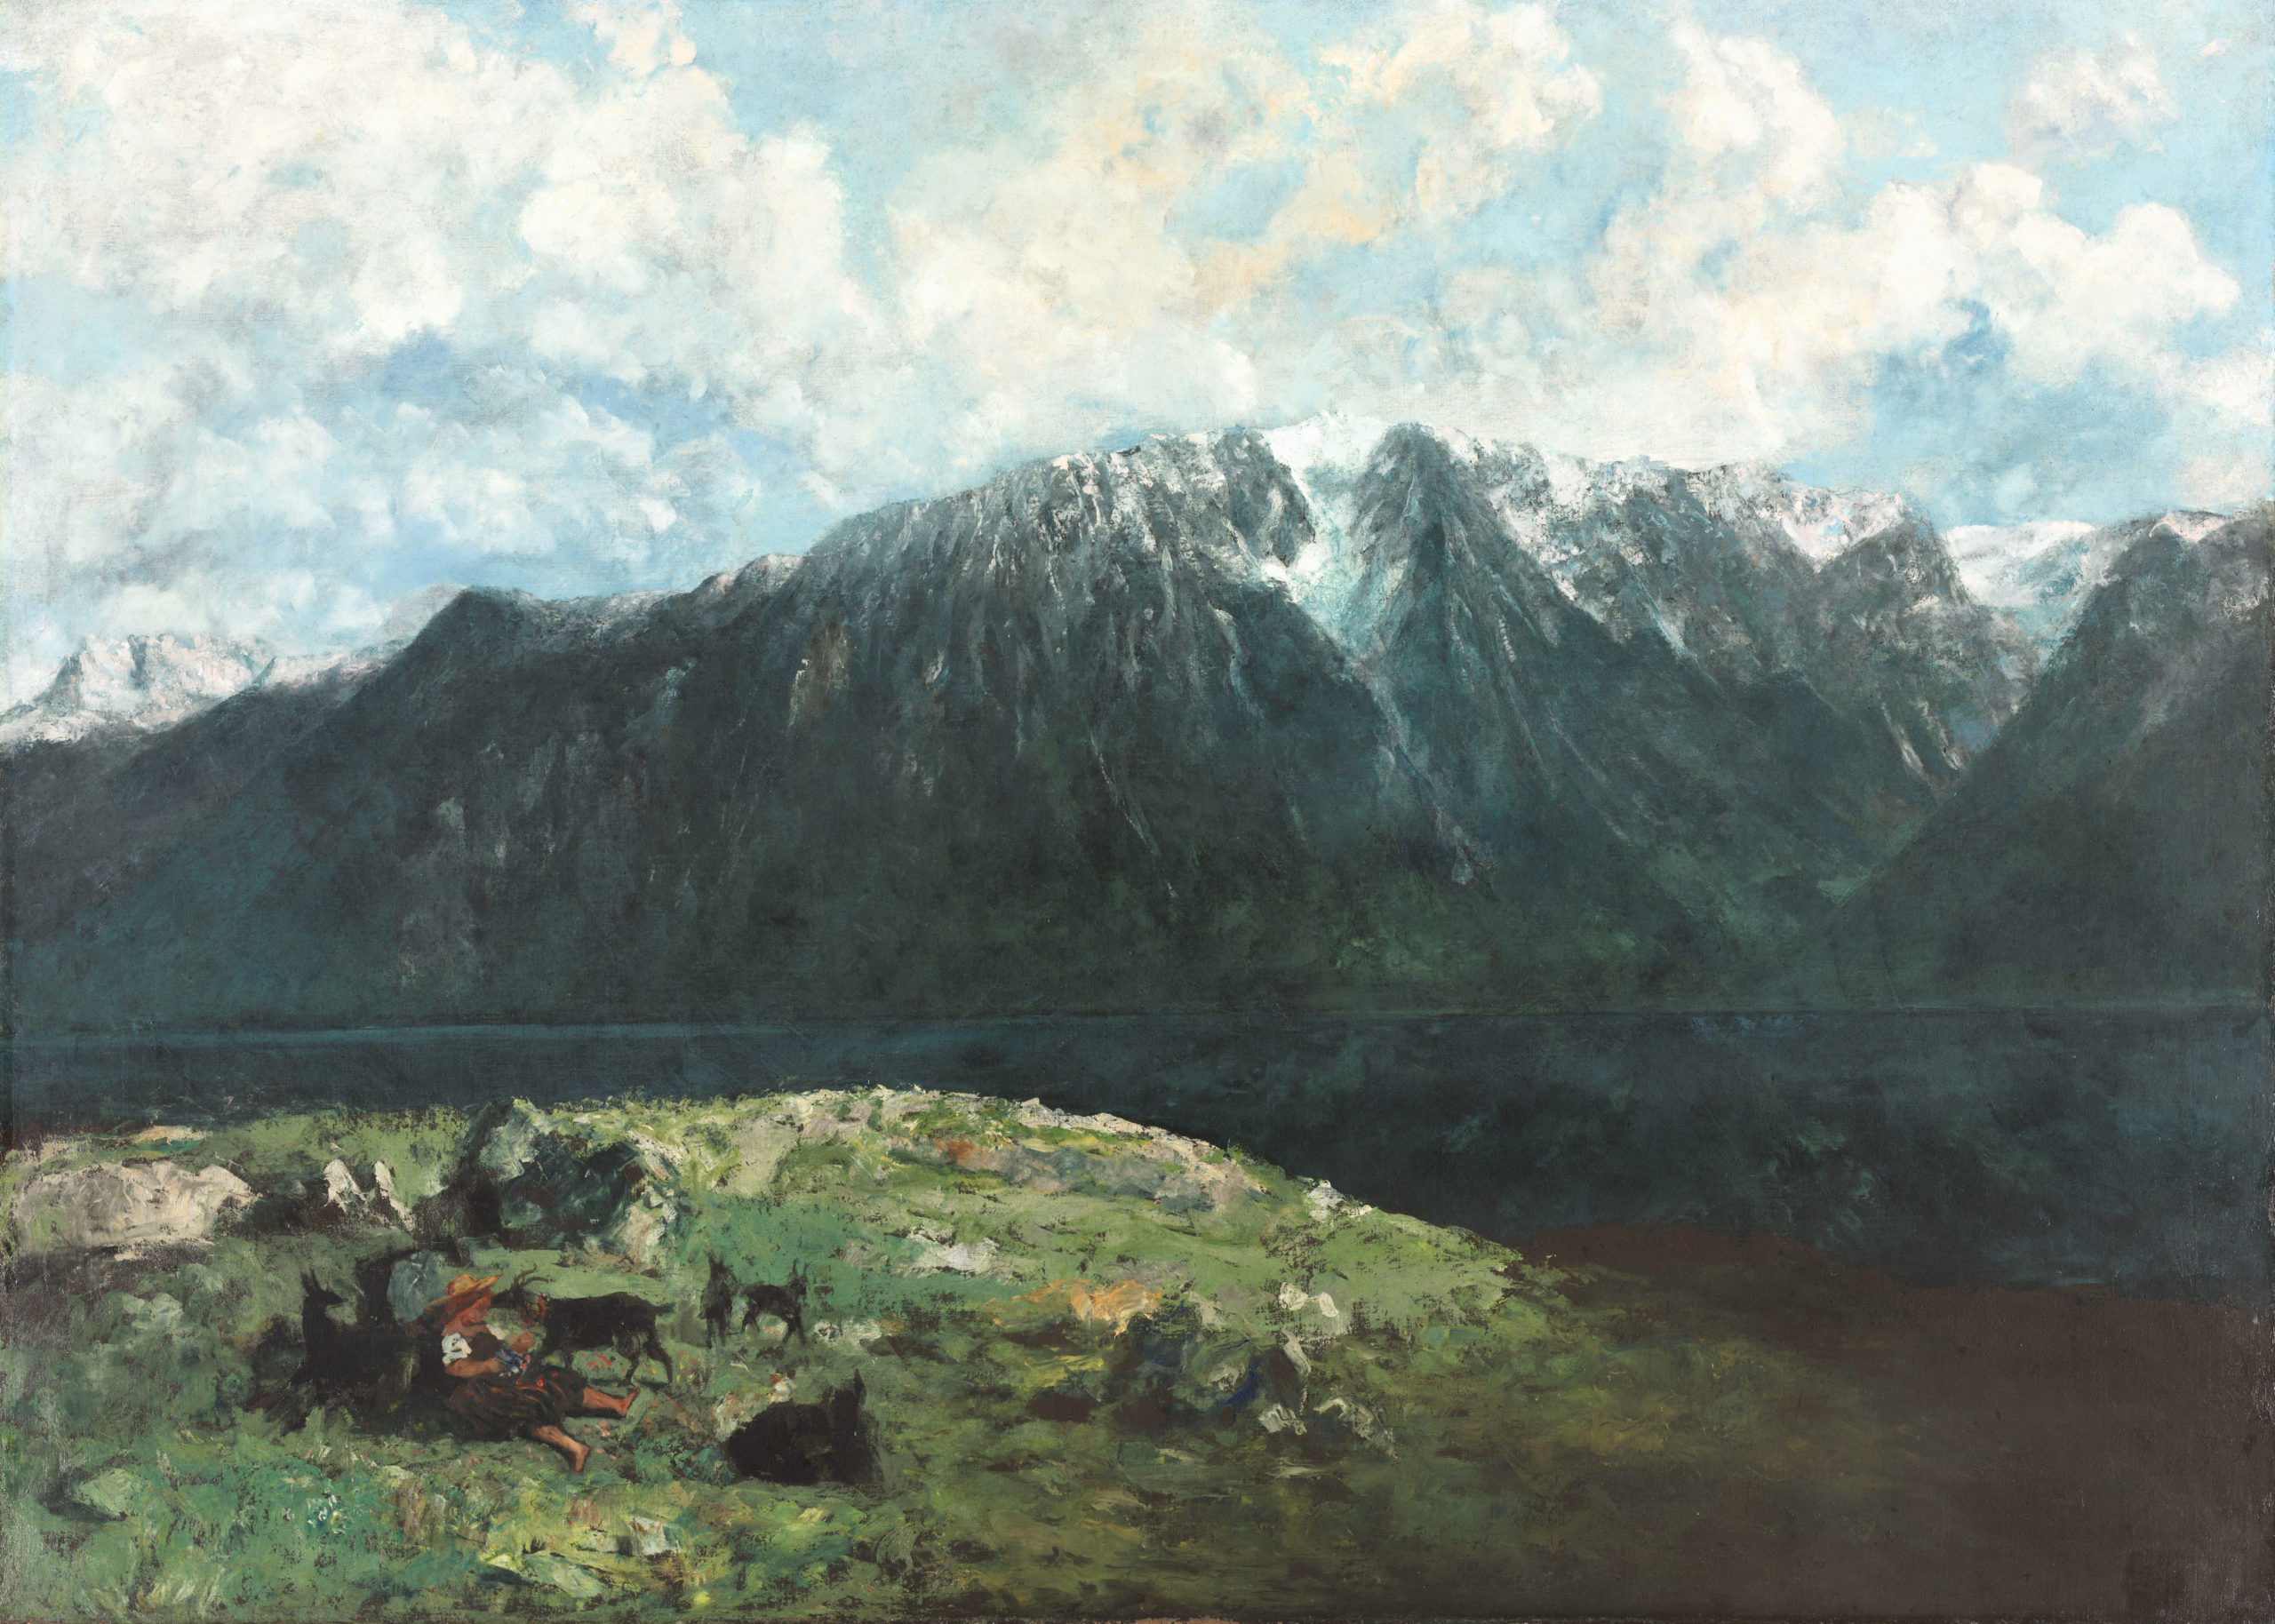 Grand Panorama des Alpes, les Dents du Midi, 1877, Cleveland, The Cleveland Museum of Art, domaine public.